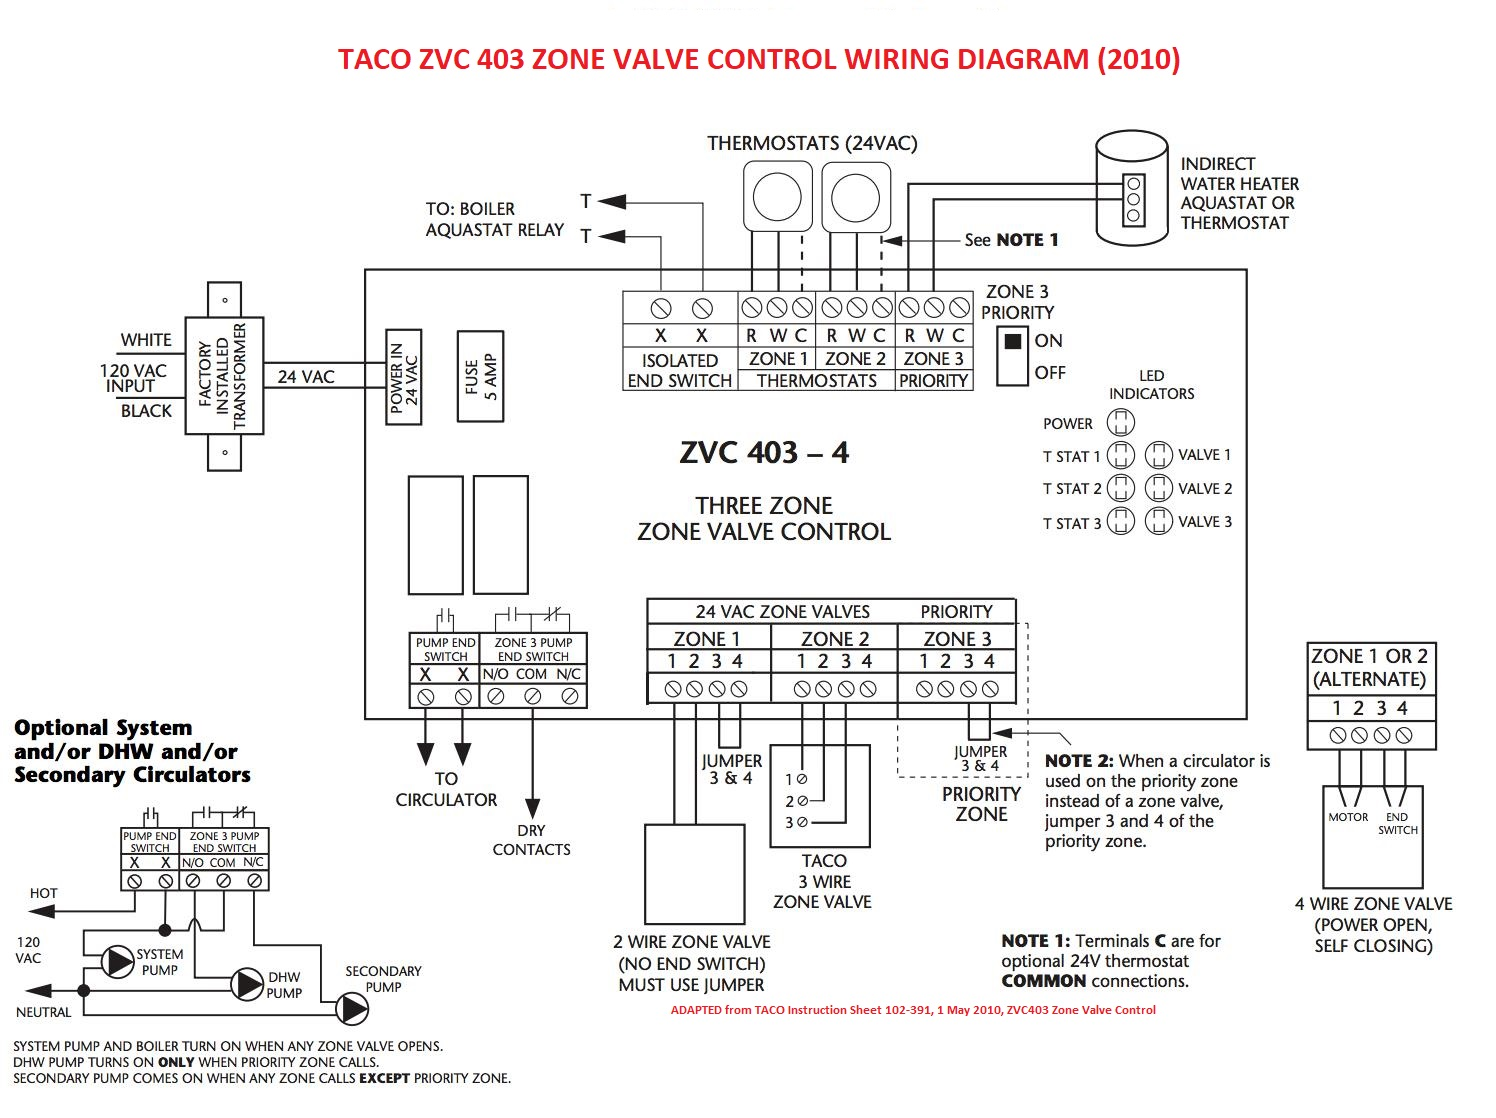 WRG-4232] International Heat Pump Wiring Diagram on